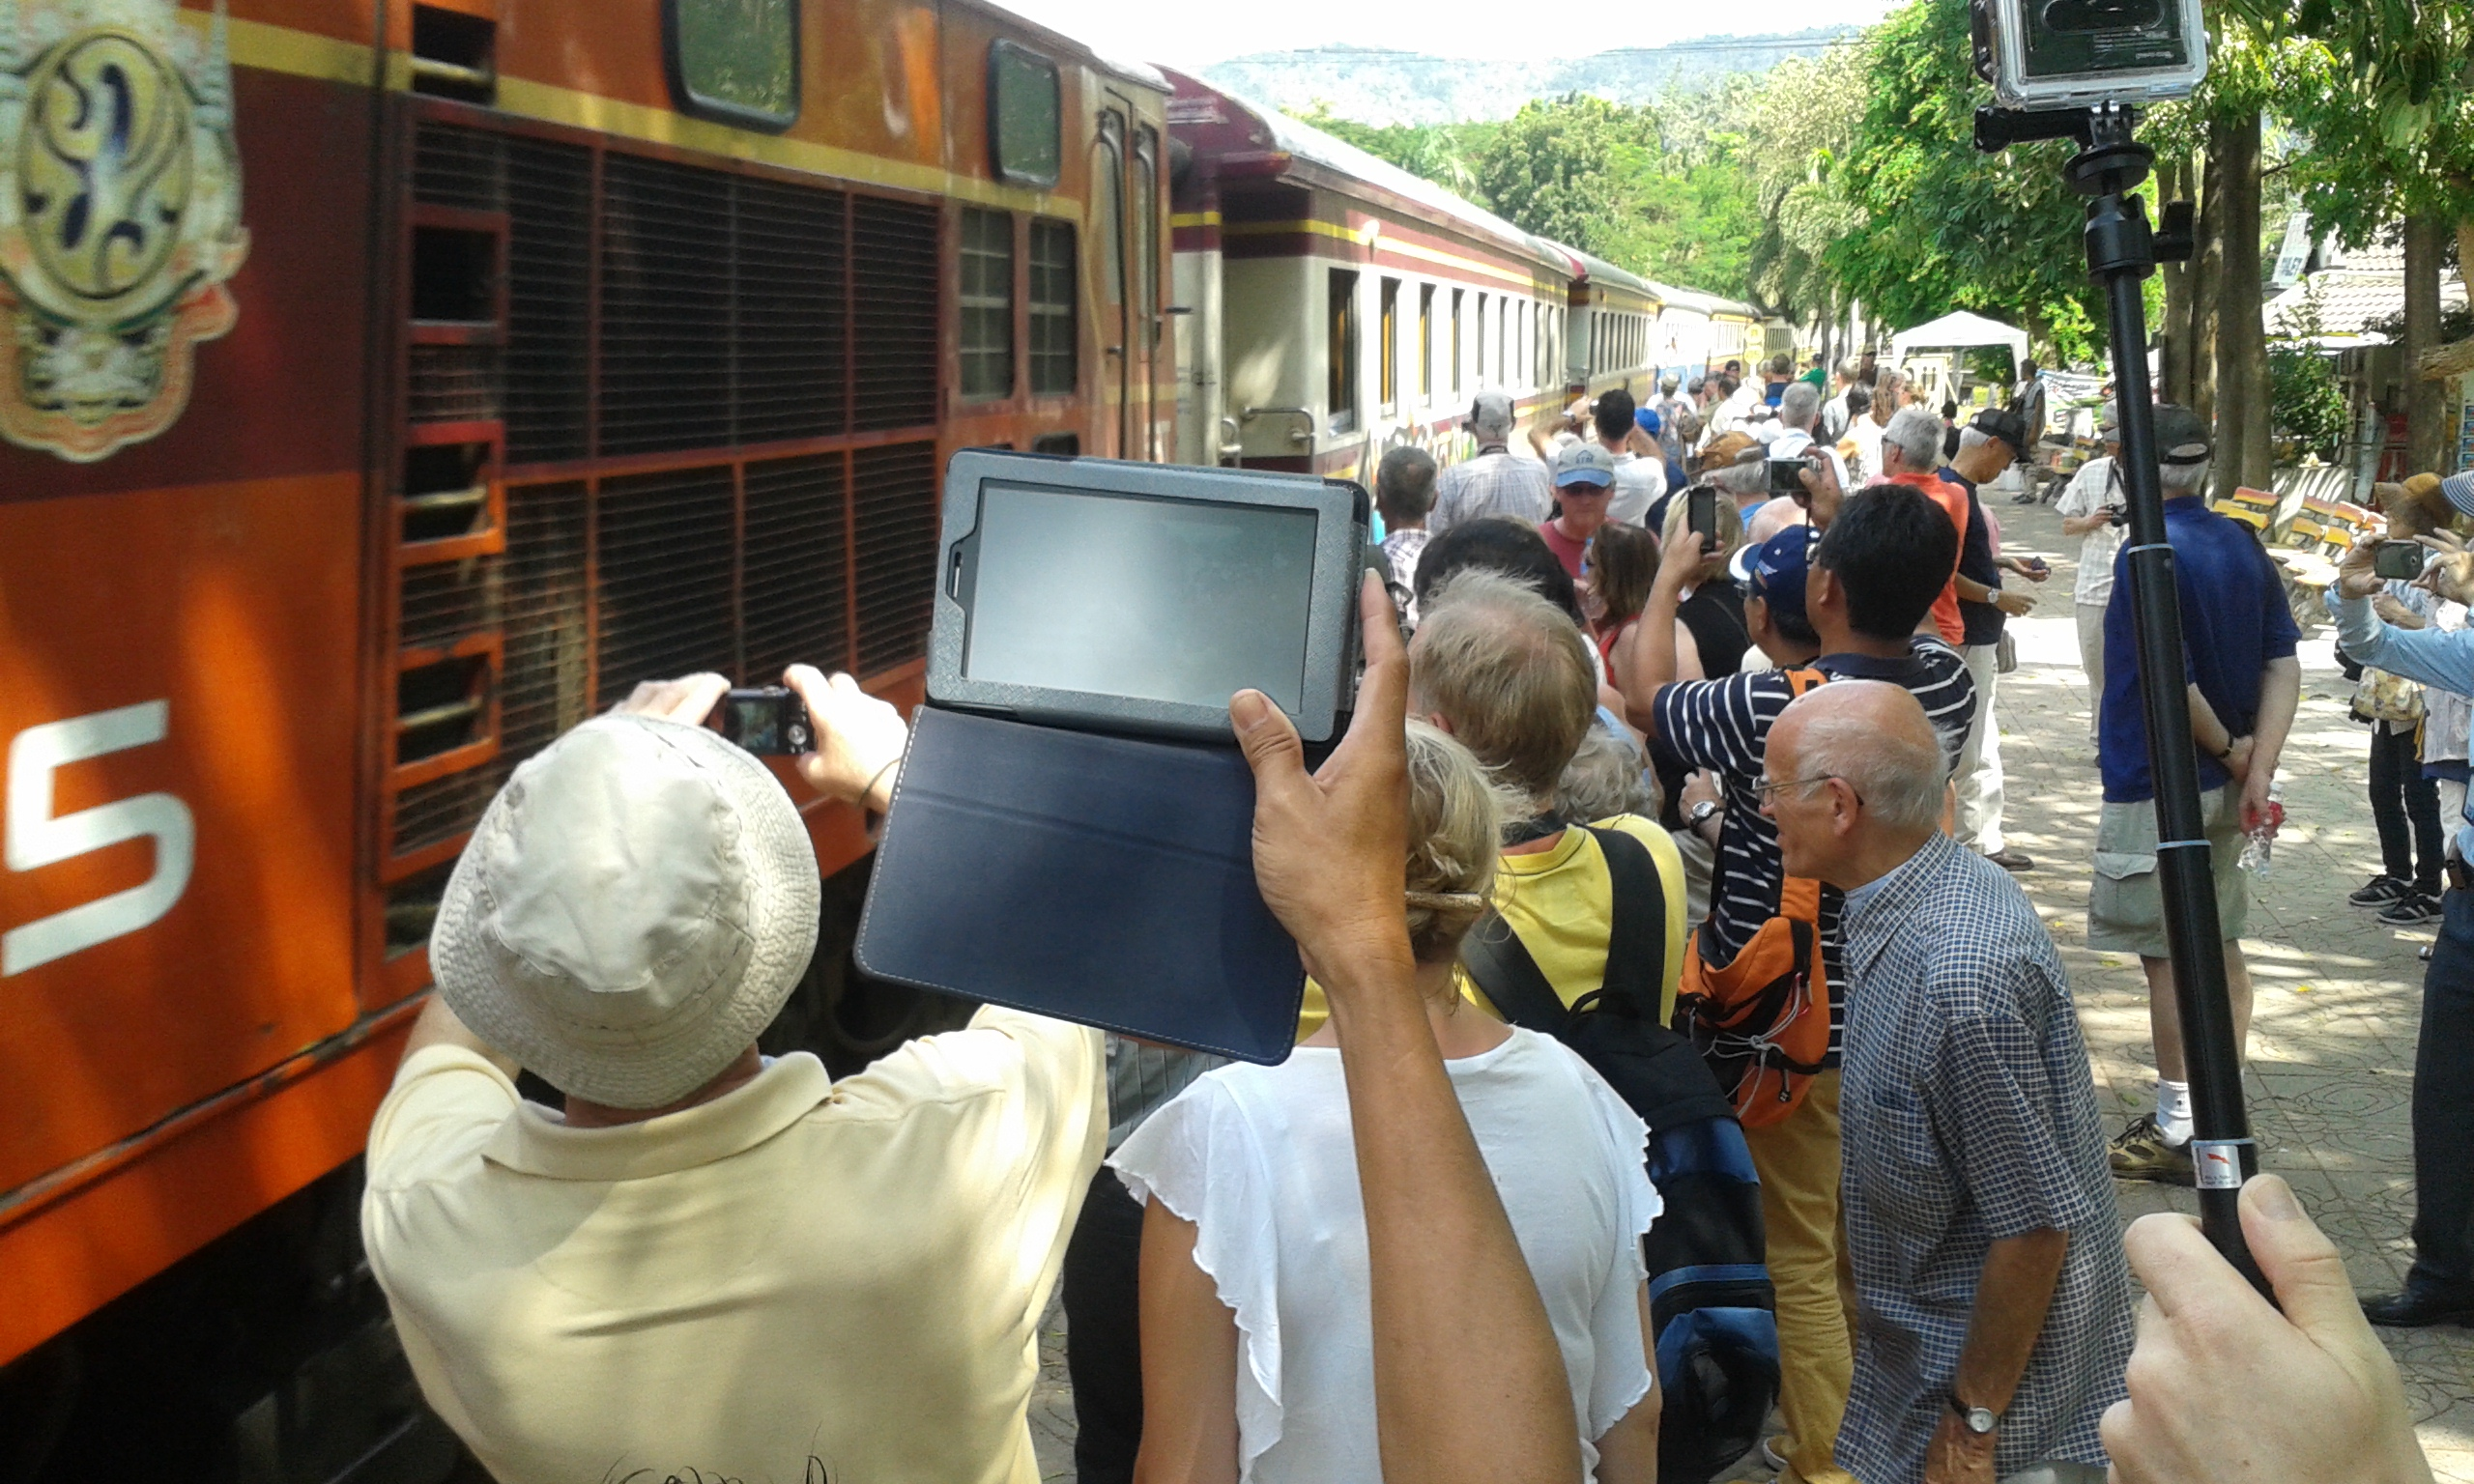 Tourists taking images of a train. Thailand, 2013.